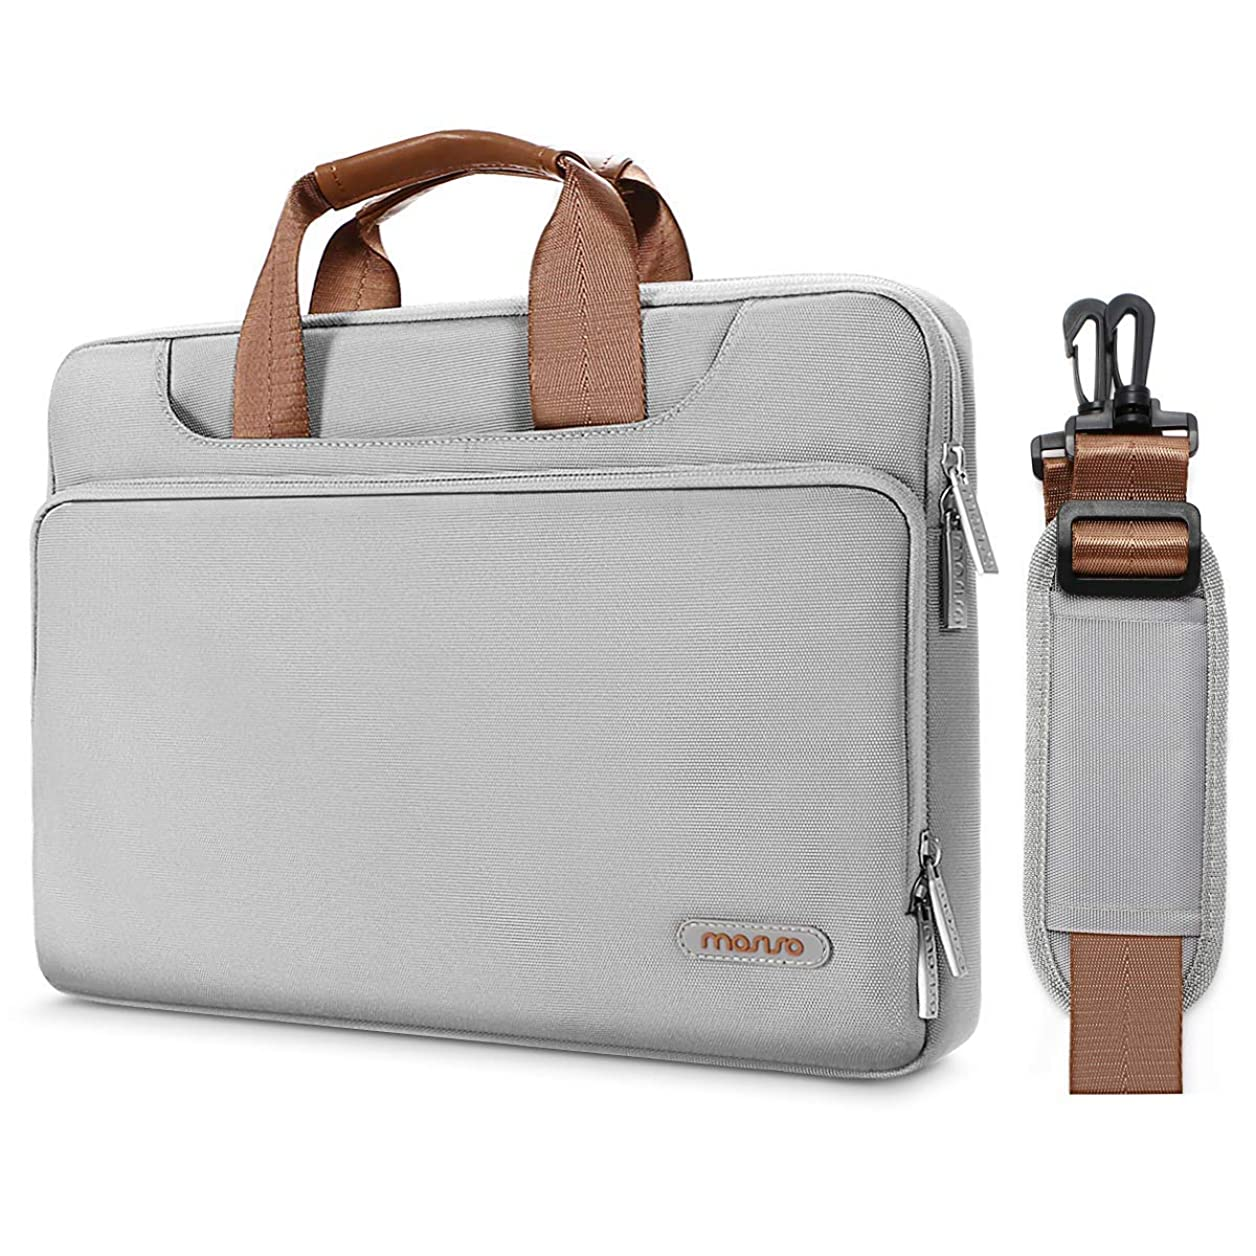 MOSISO 360° Protective Laptop Shoulder Bag Compatible 14-15.6 Inch 2018 2017 2016 MacBook Pro Touch Bar A1990 A1707, ThinkPad Chromebook, Polyester Briefcase Sleeve with Back Trolley Belt, Gray sbilgopckpbtgdaf